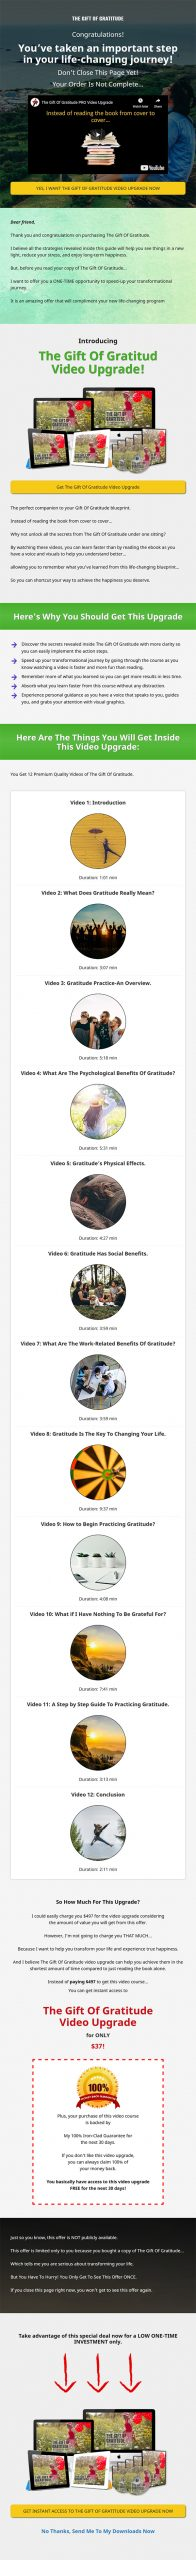 Gift of Gratitude Ebook and Videos MRR